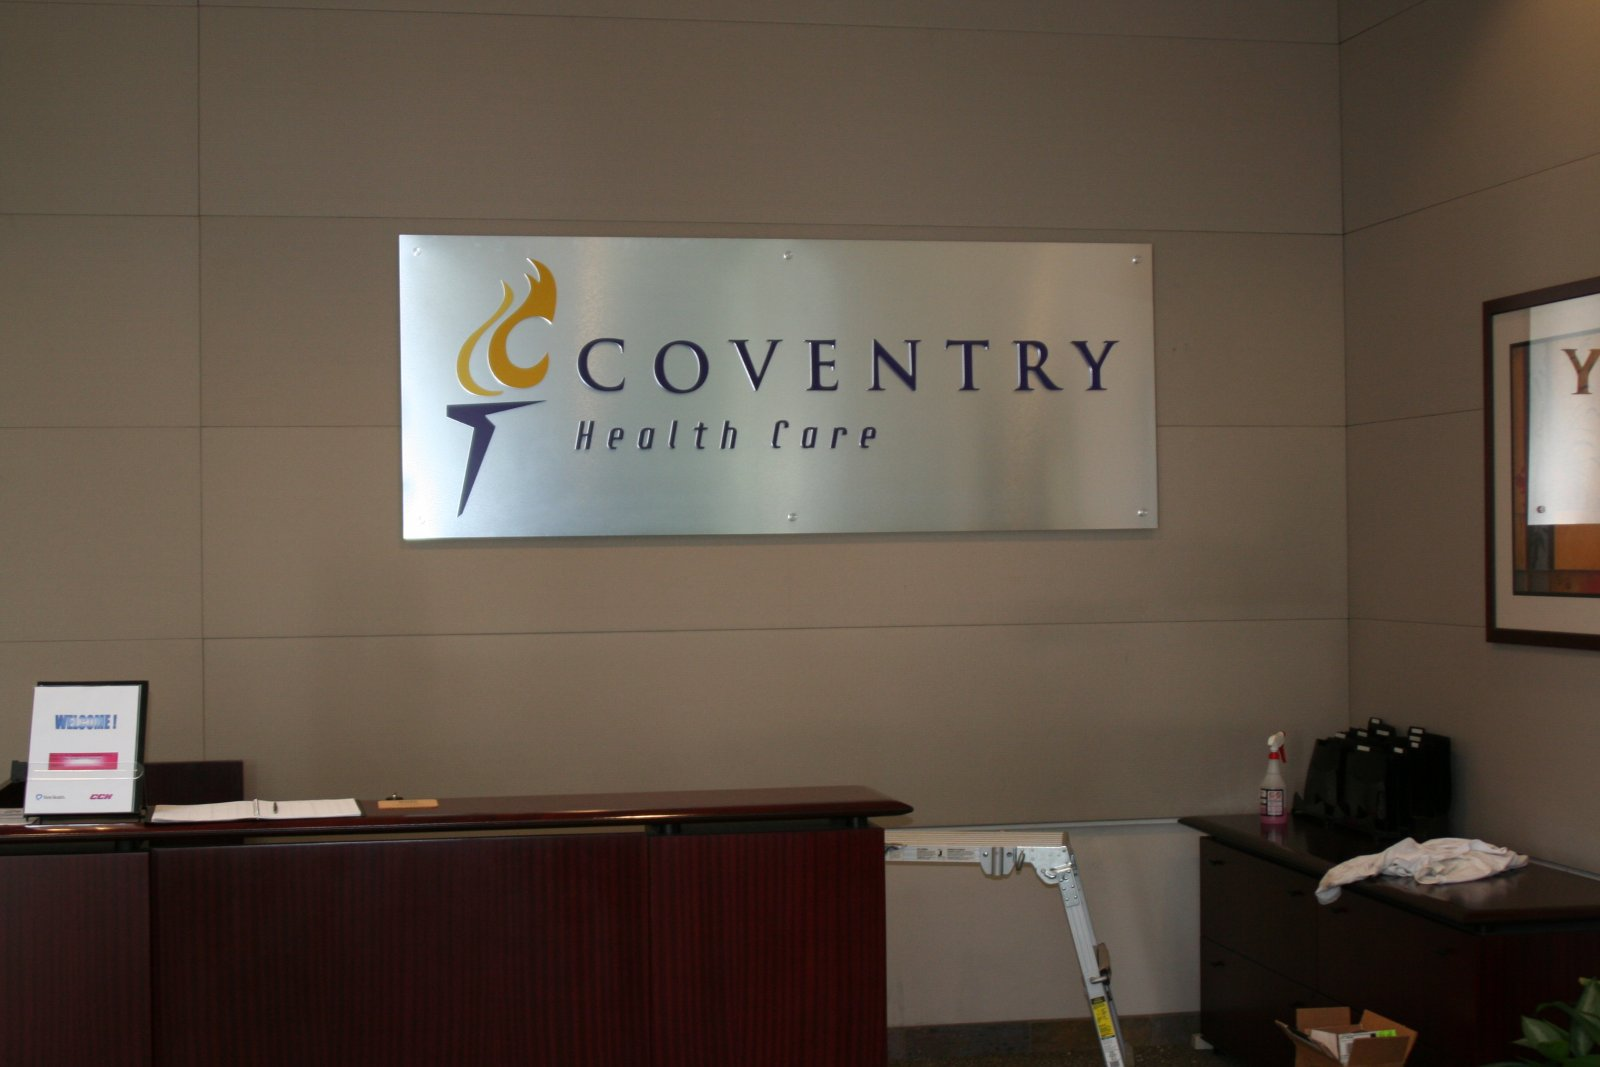 Coventry Health Care Lobby Sign - Scripps Ranch, San Diego